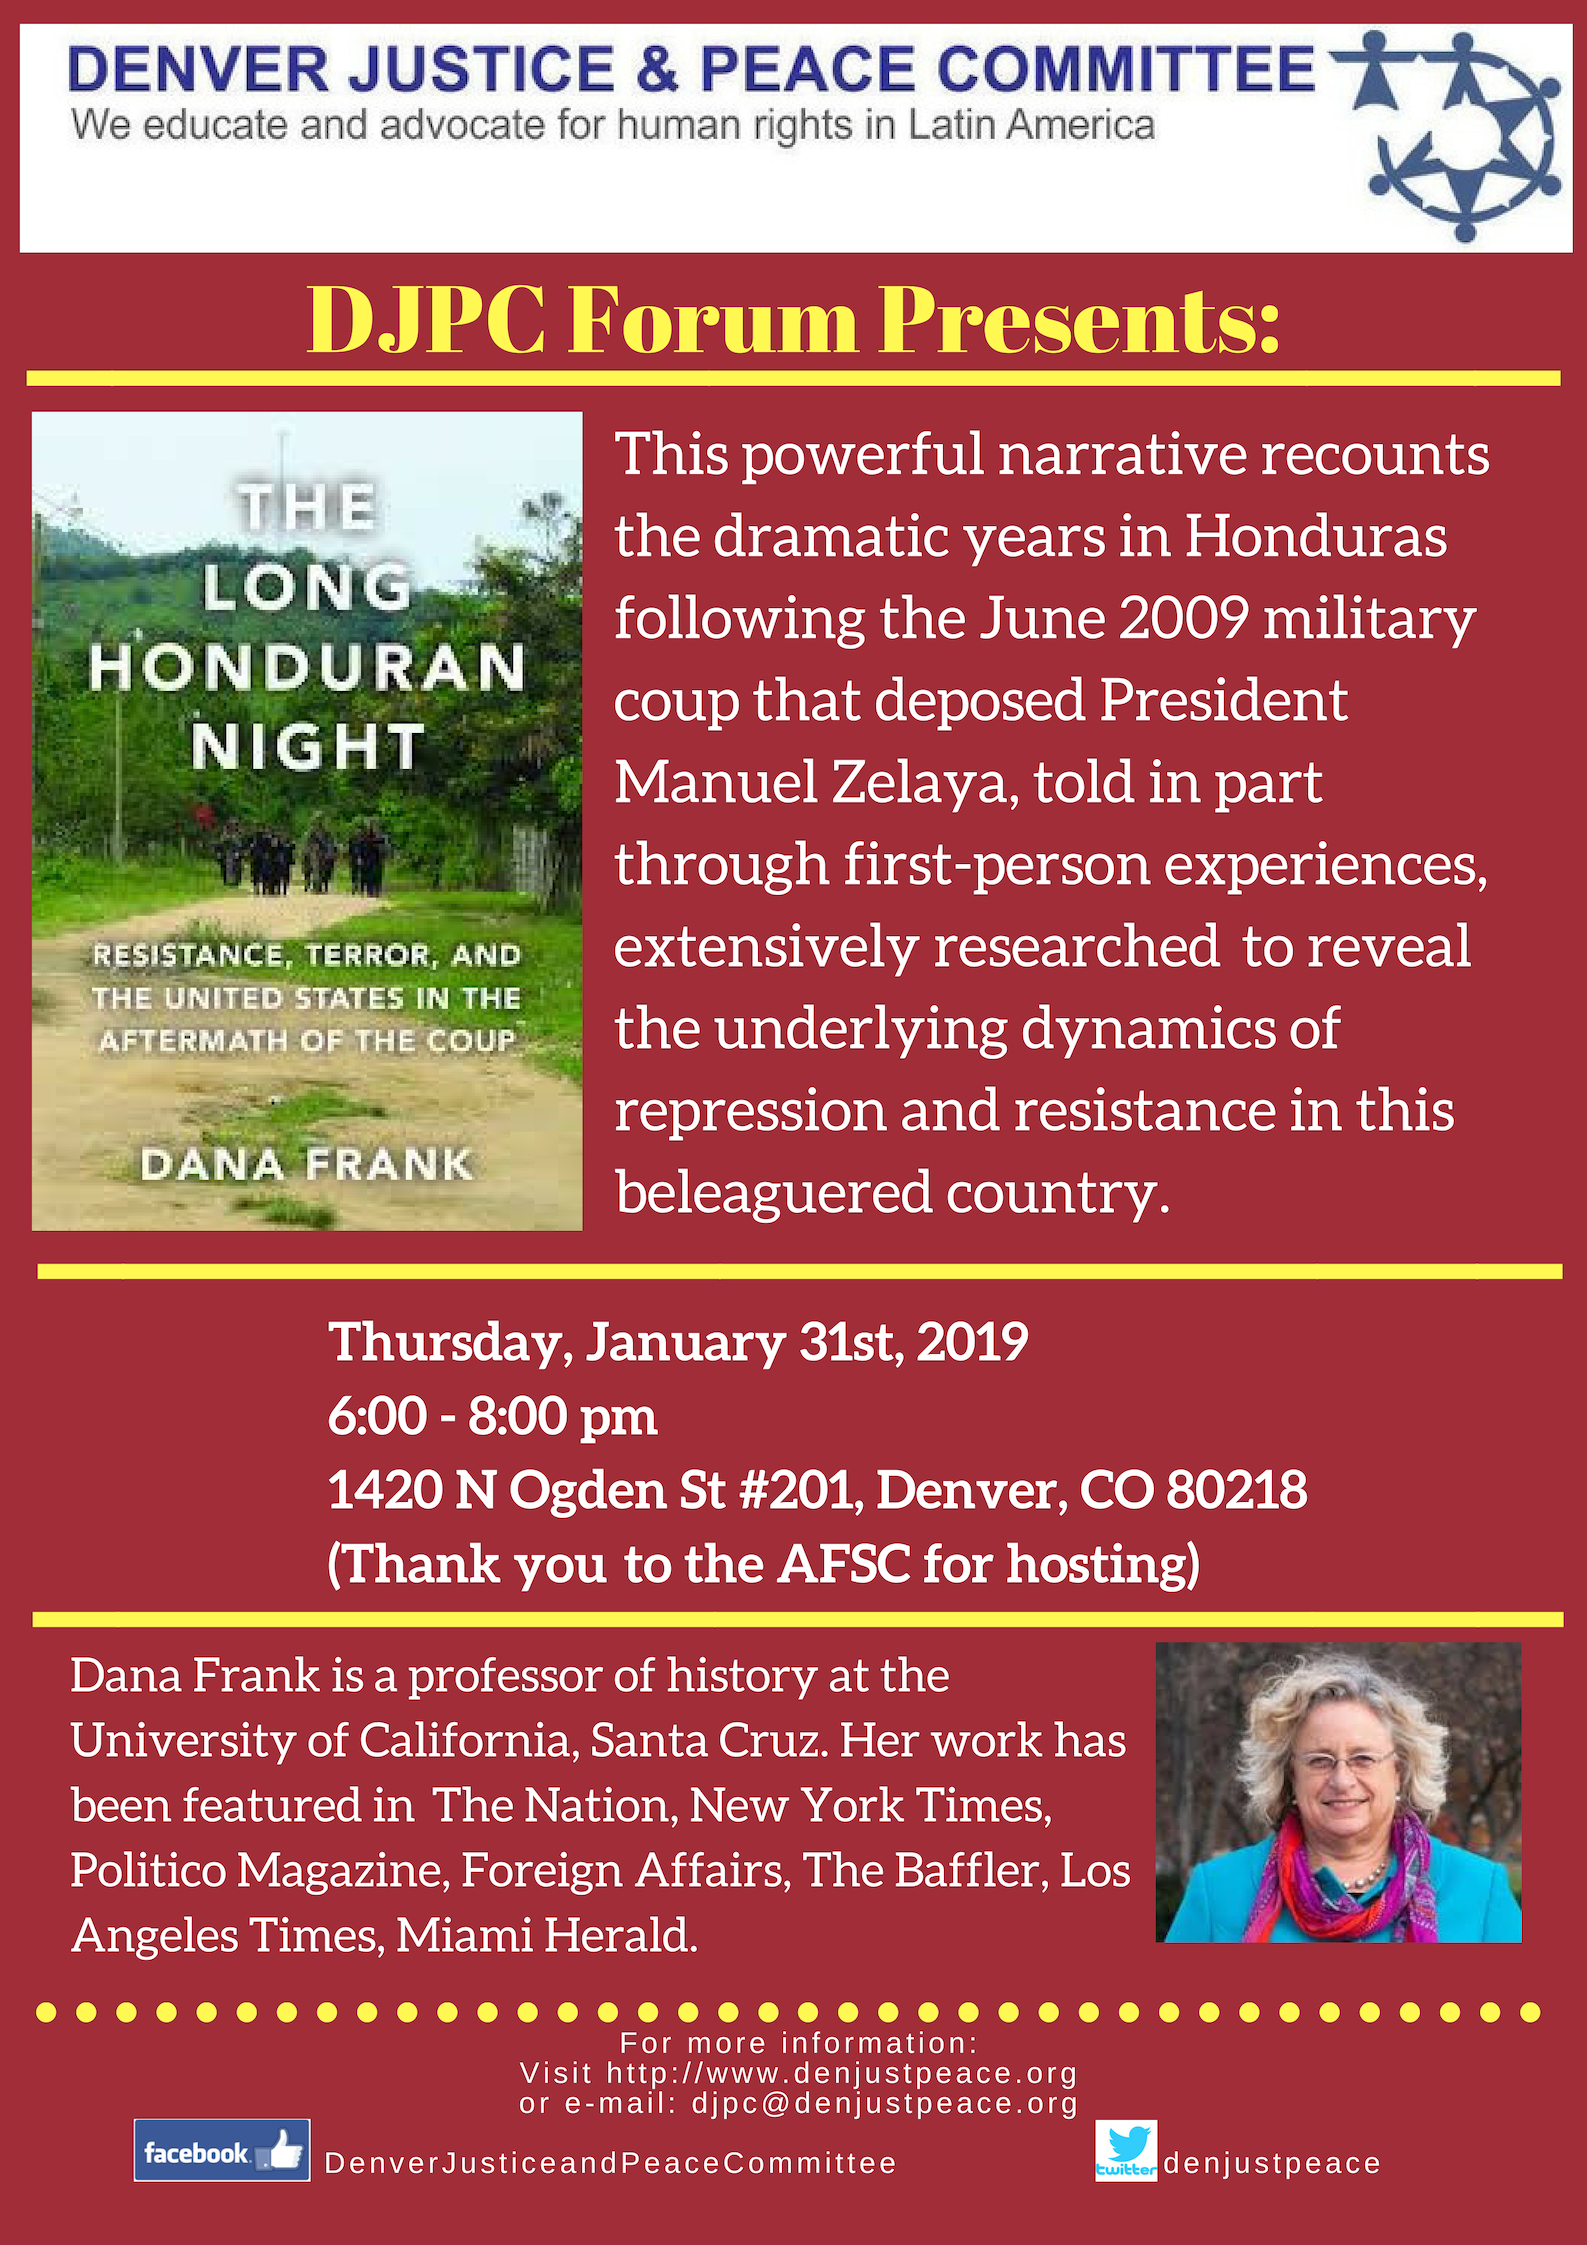 (English) DJPC Forum: The Long Honduran Night with Dana Frank. January 31st at 6:00 pm.